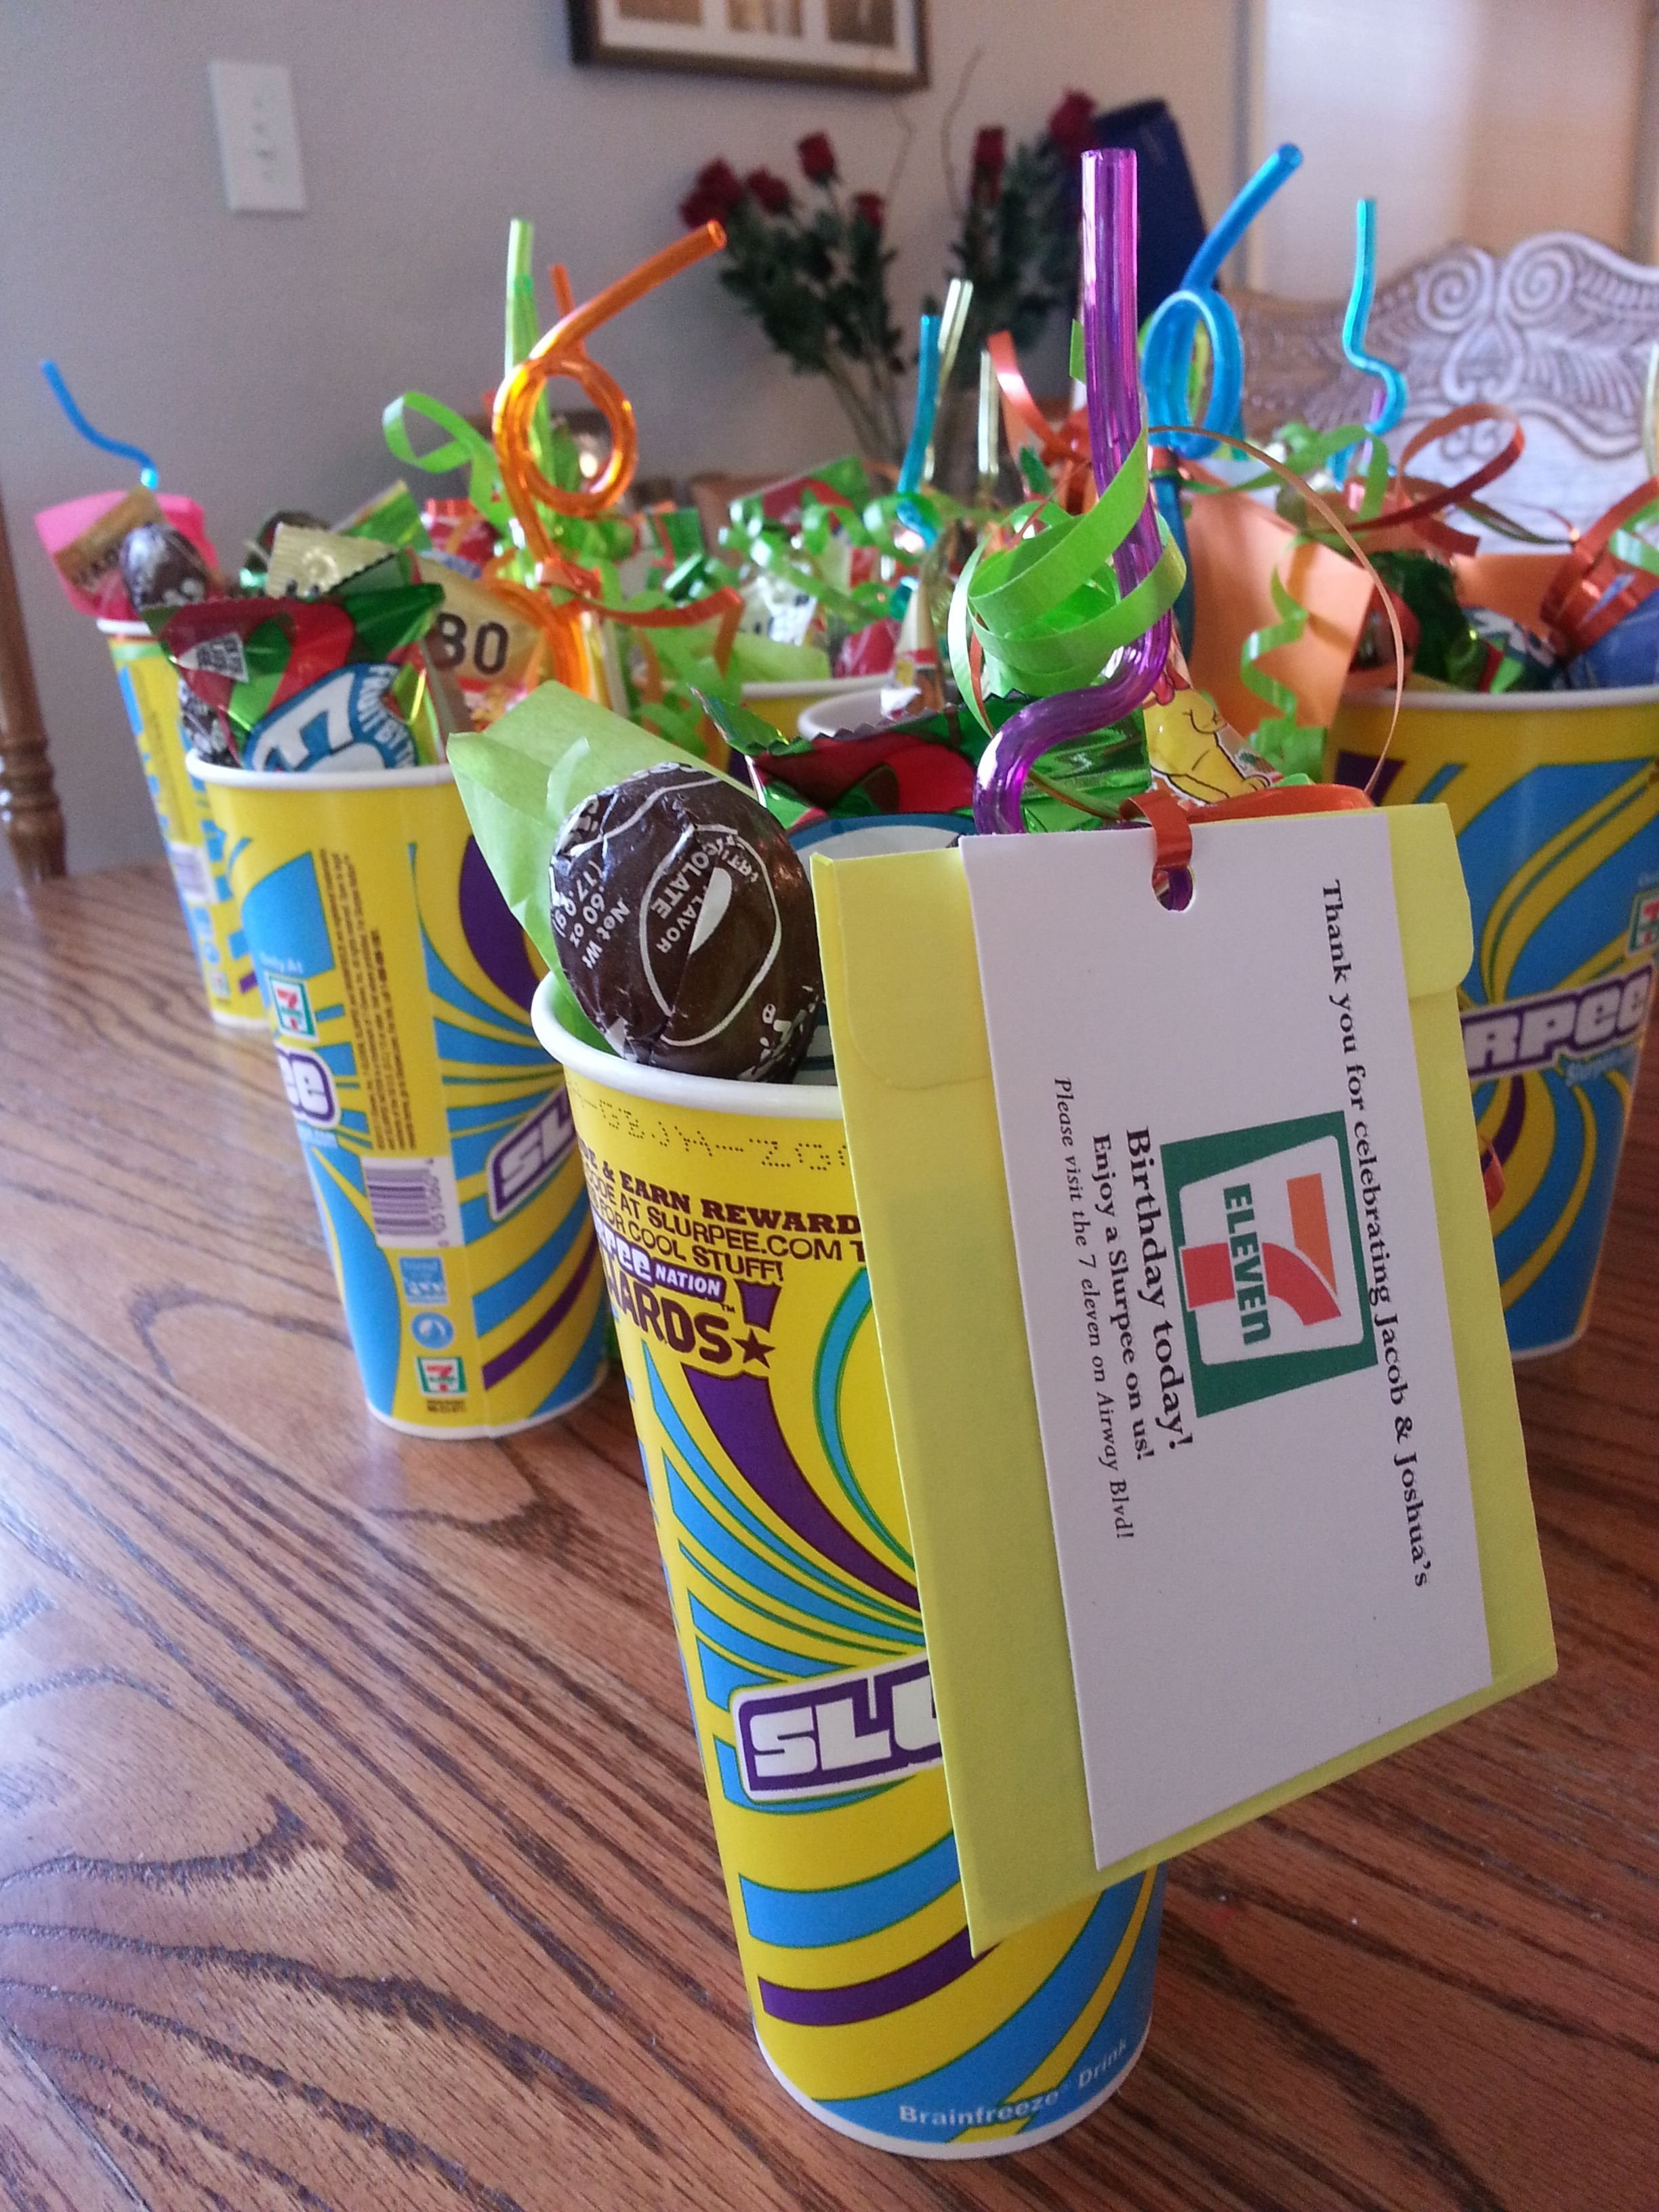 10 Fabulous Birthday Party Ideas For 8 Year Old Boy my boys turned 7 and 11 years old and their birthdays are very close 25 2021